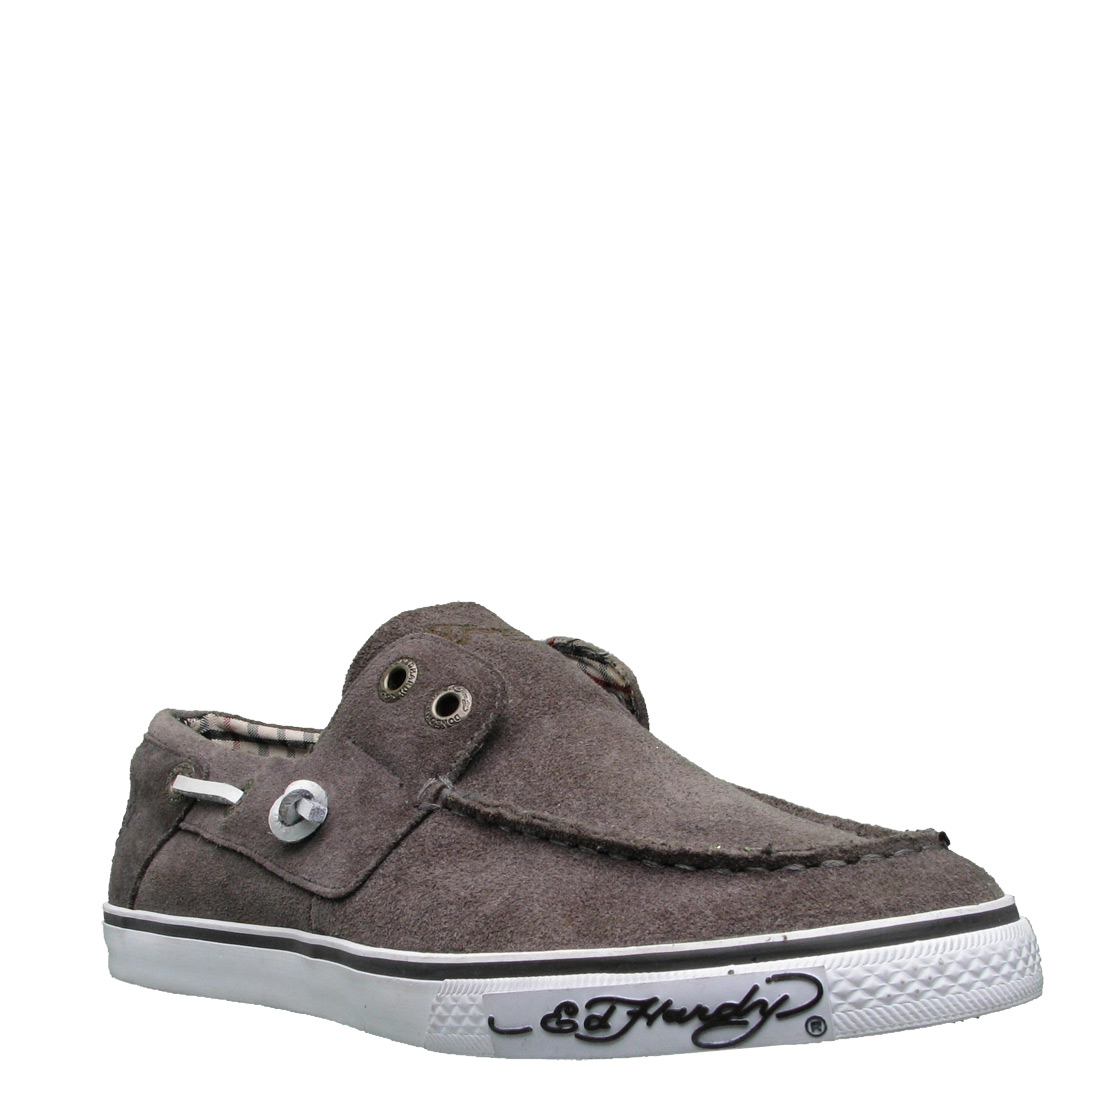 Ed Hardy Nalo Shoe for Women - Grey